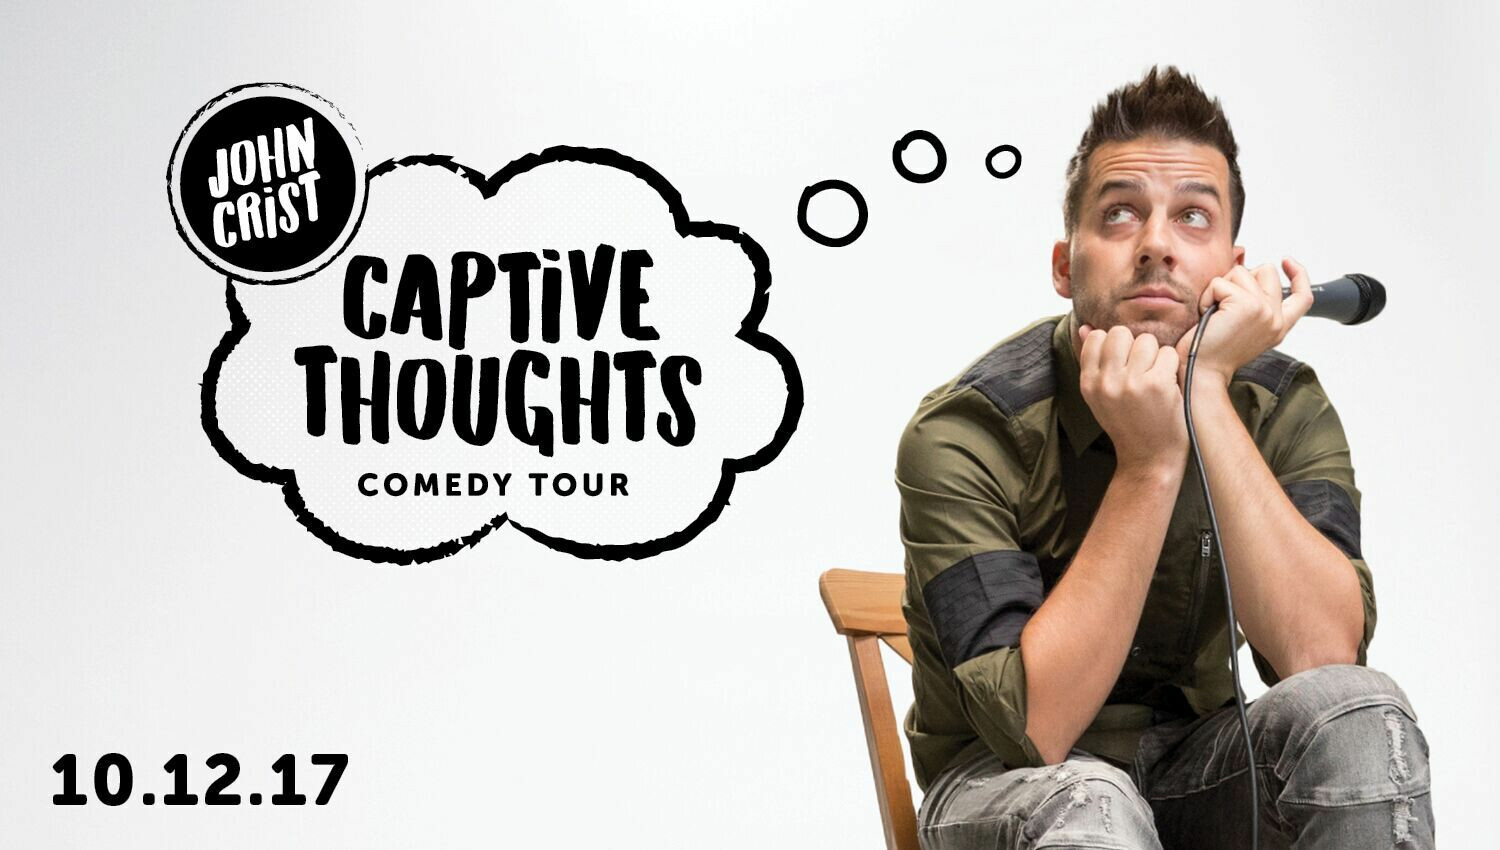 John Crist: Captive Thoughts Comedy Tour